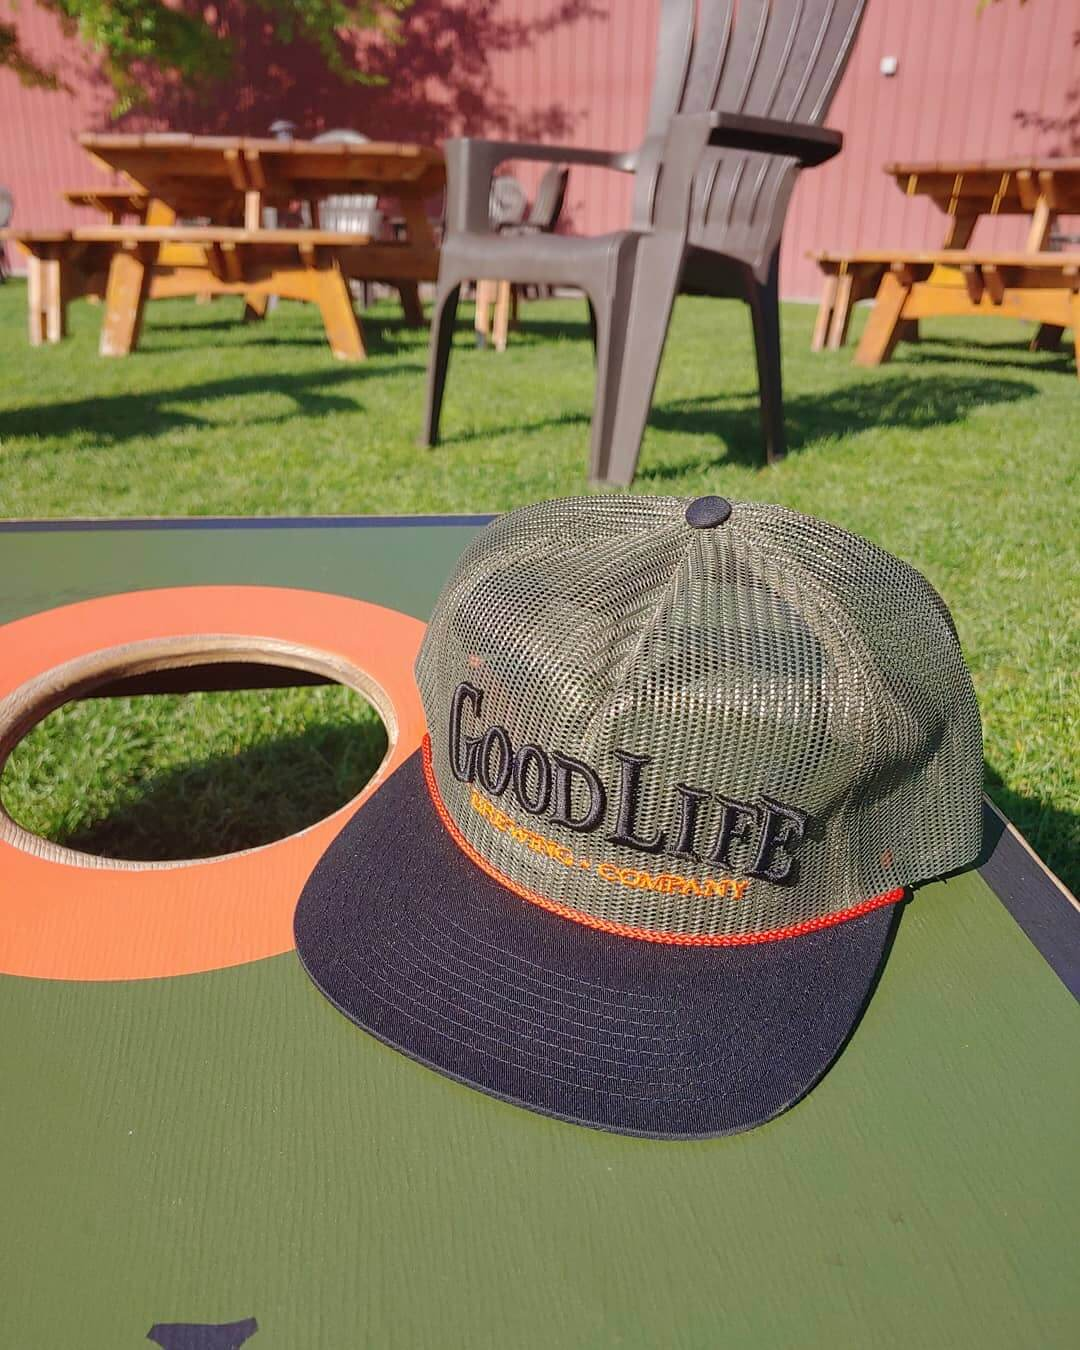 All Mesh Flatbill Trucker comin at ya! Find it at our pub or online in our Shop!  https://www.goodlifebrewing.com/product/all-mesh-flatbill-in-hunter-green-black-and-orange/